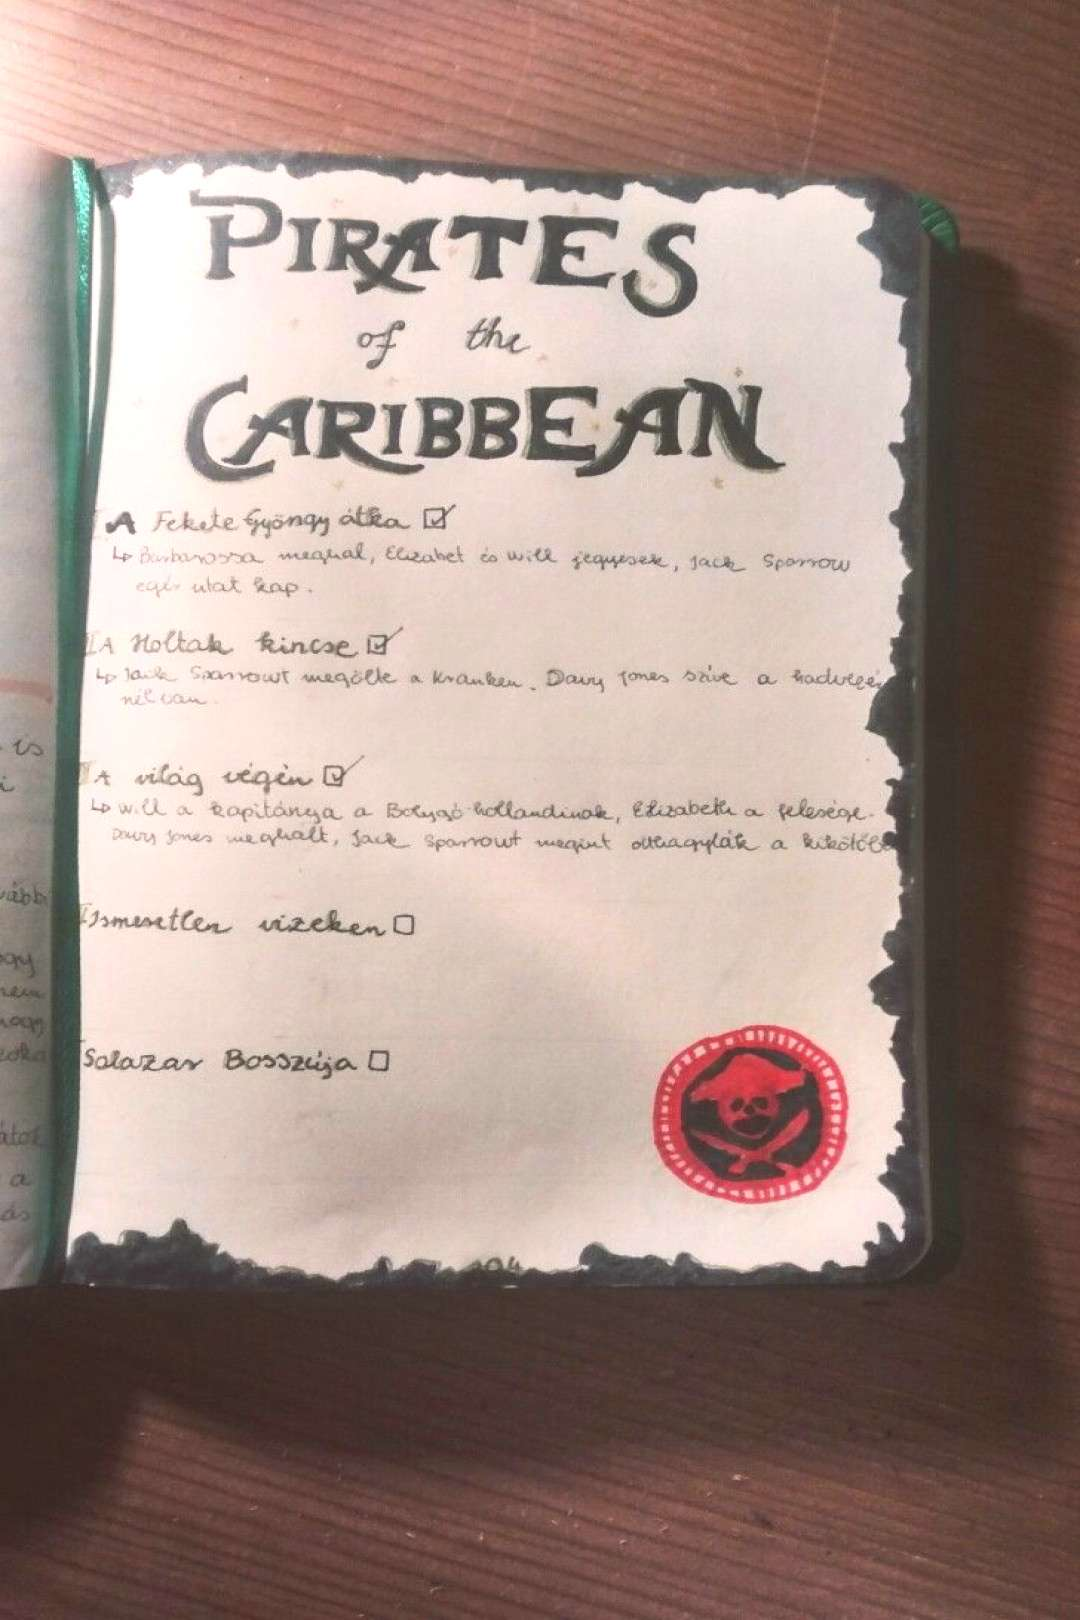 of the Caribbean journal